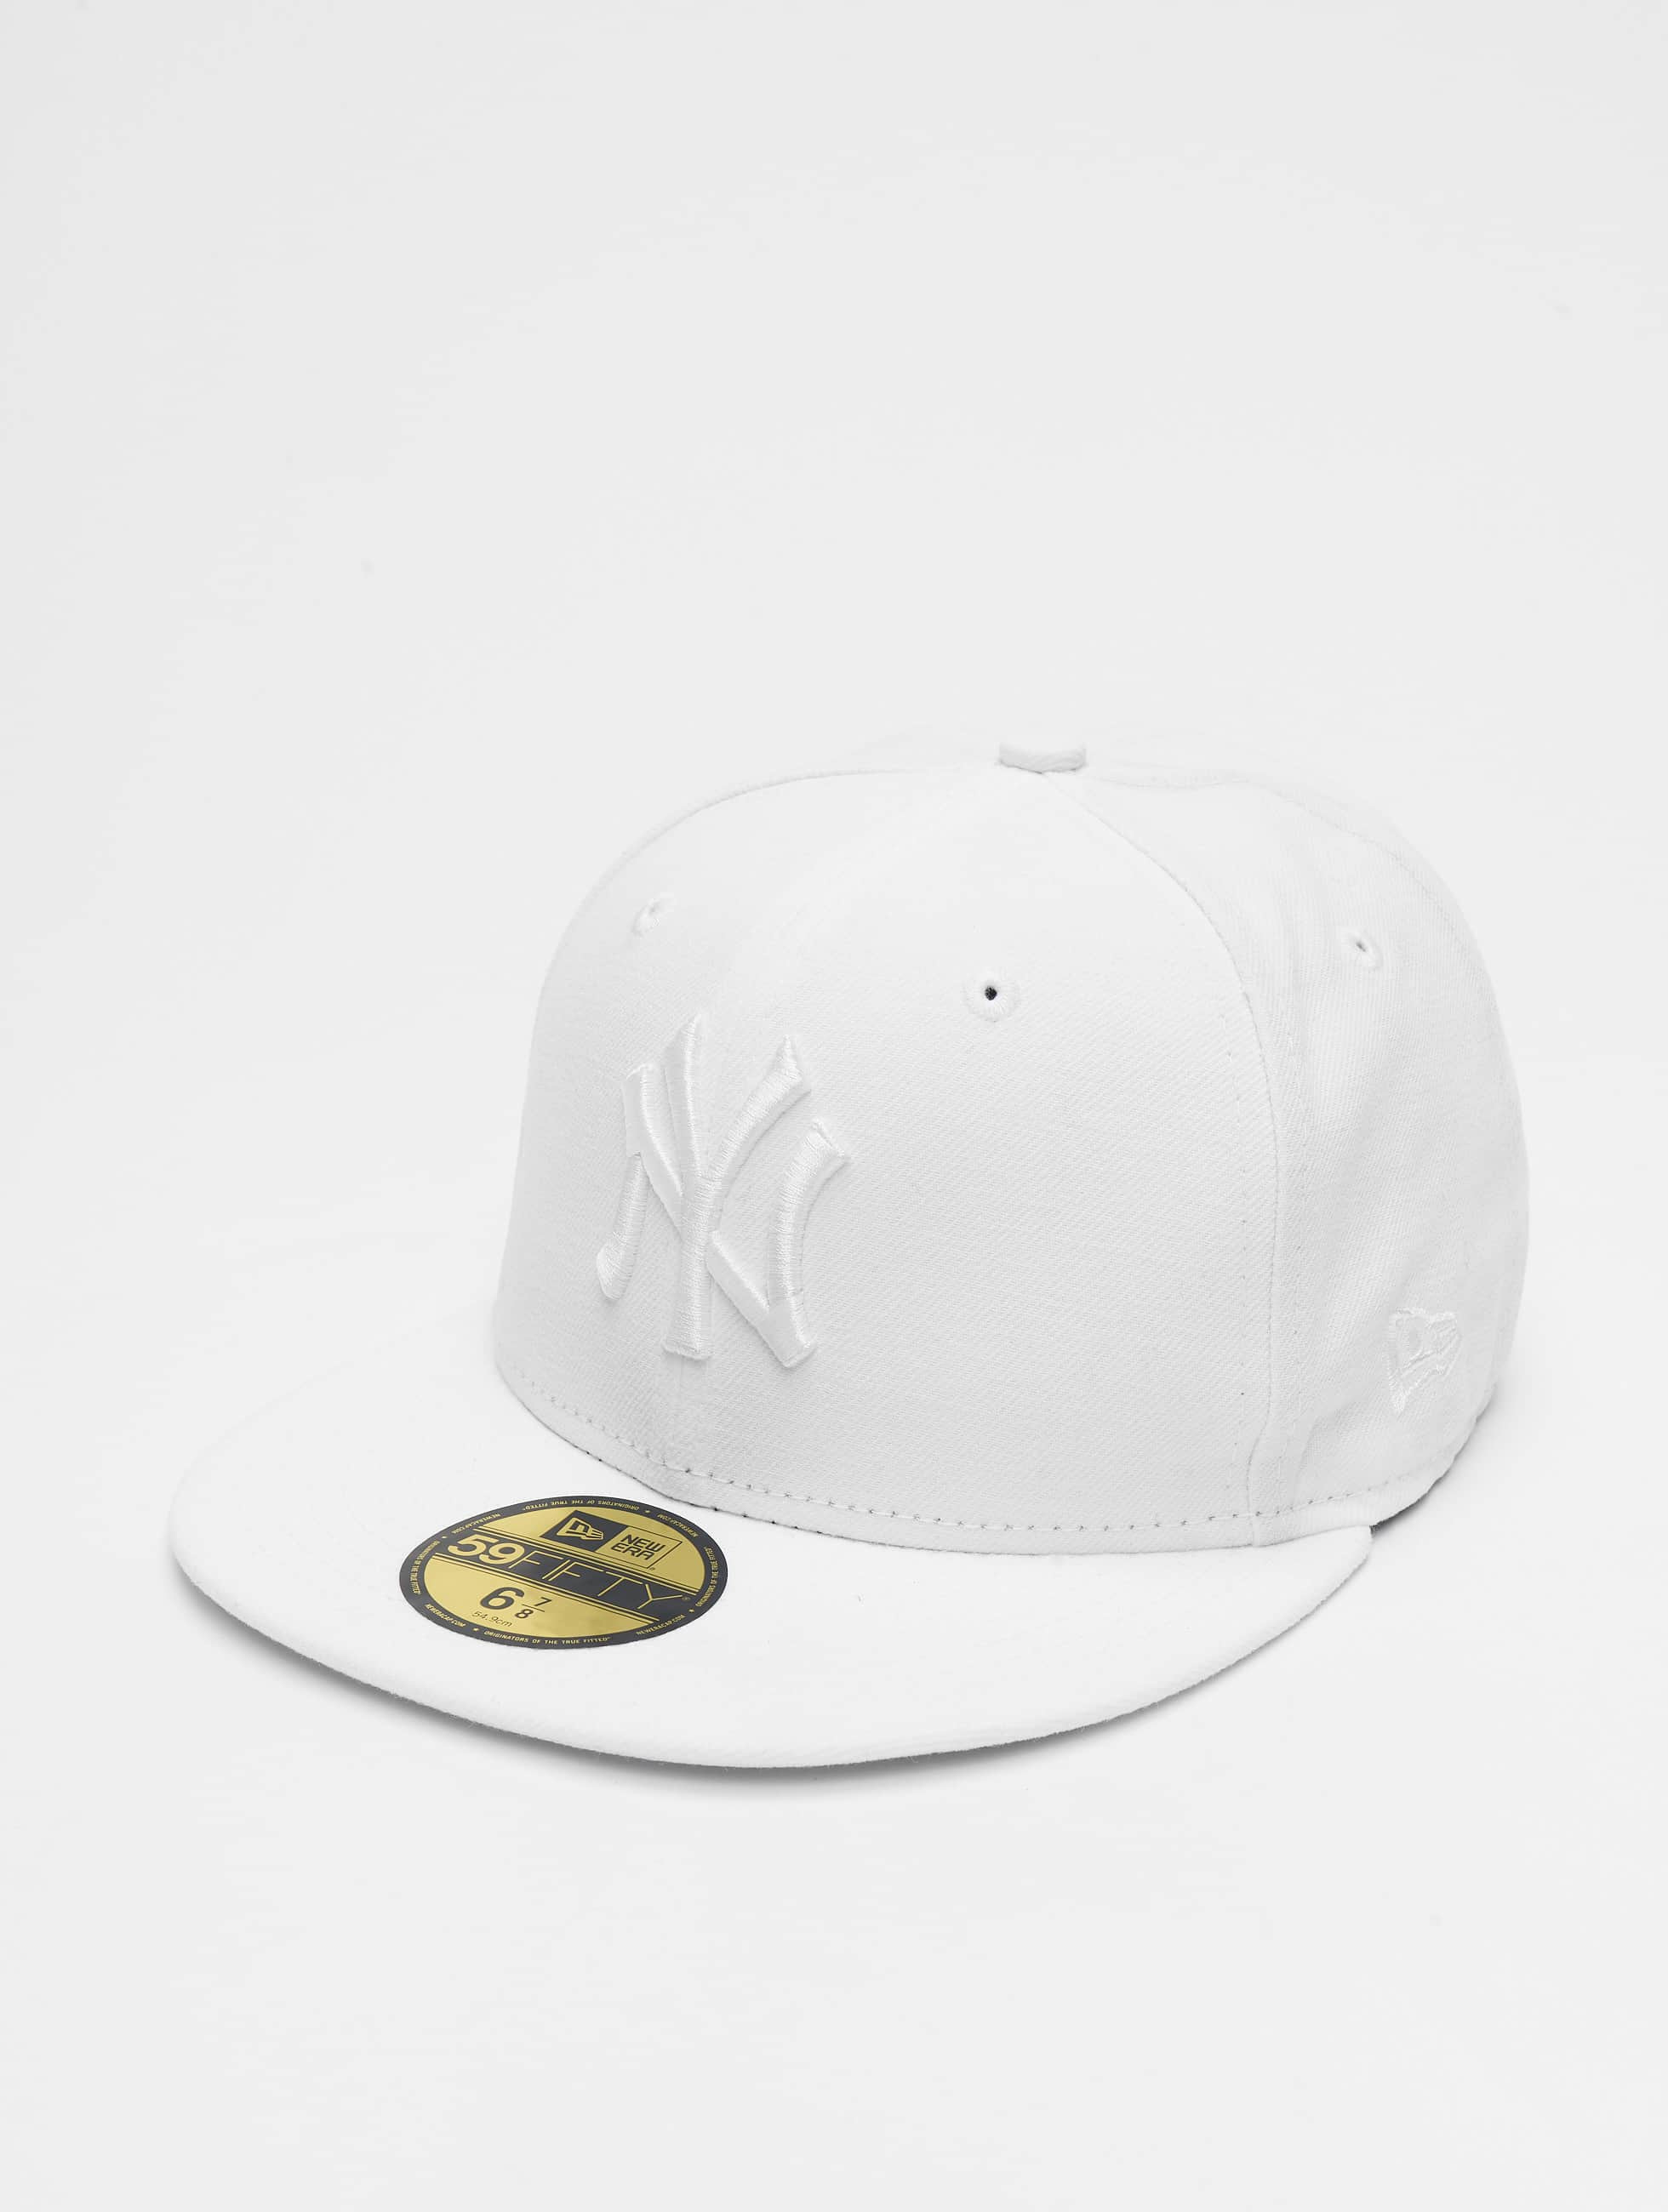 New Era Casquette Fitted Optic NY Yankees 59Fifty blanc